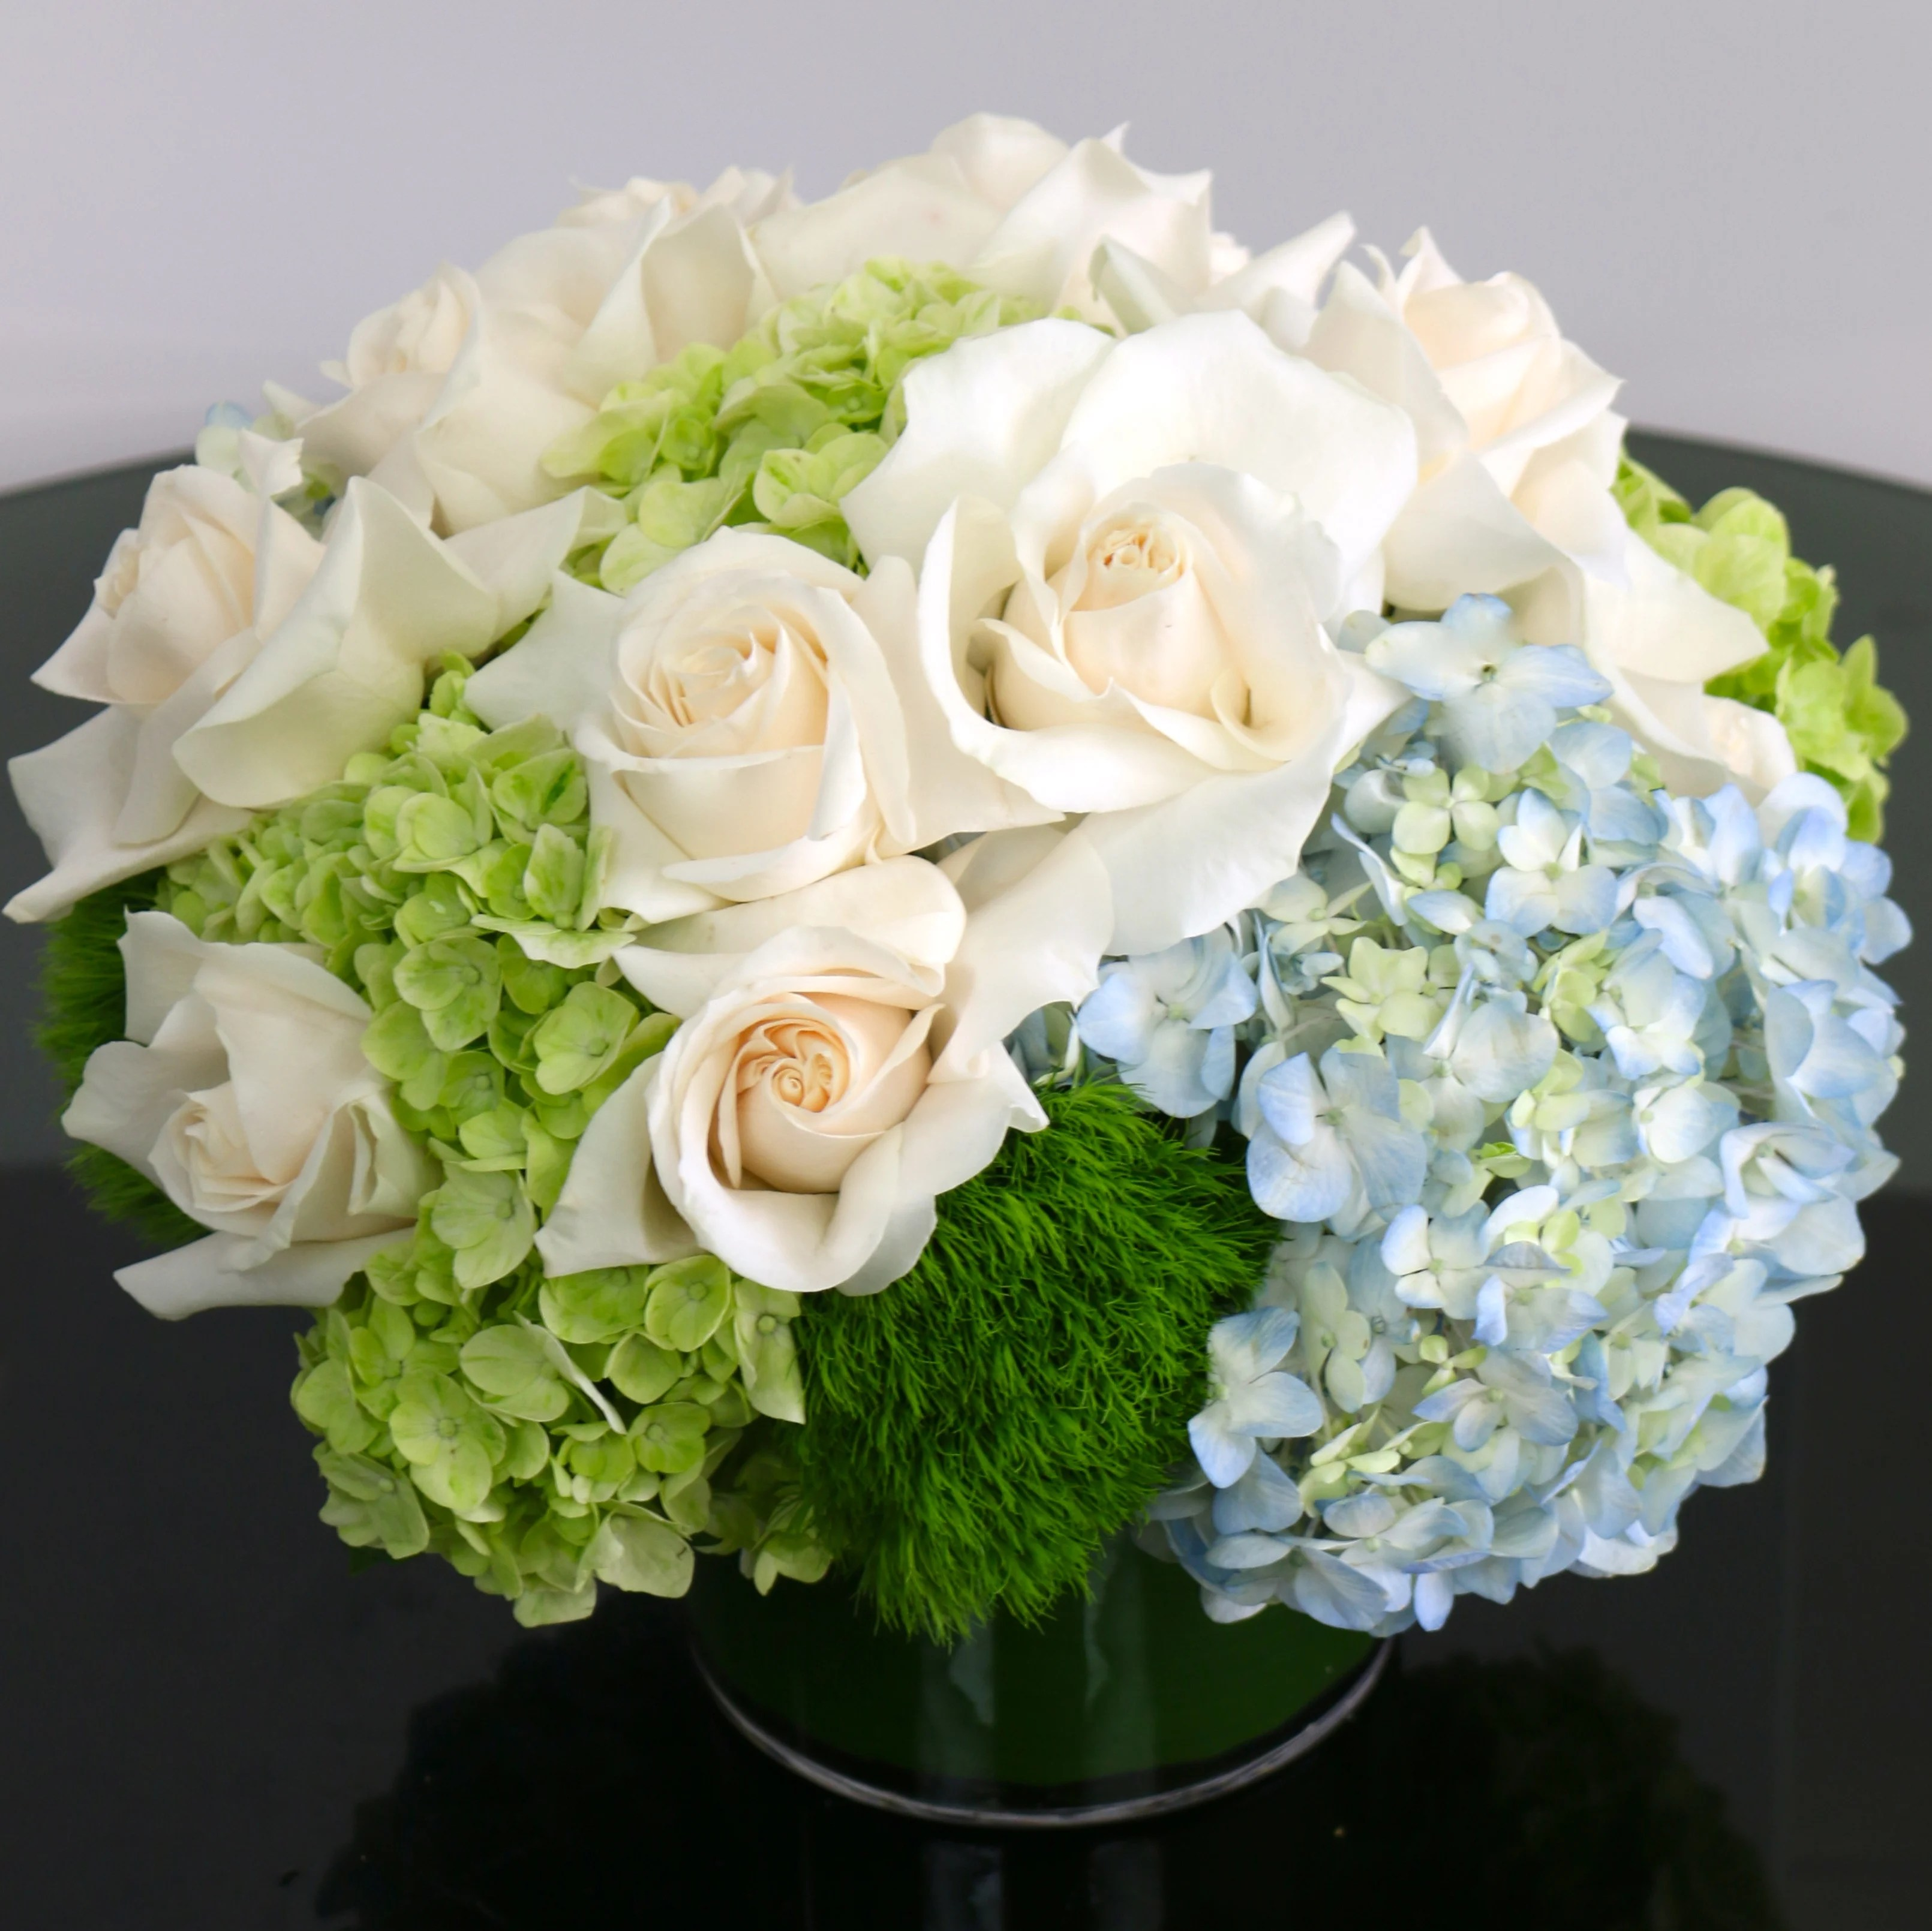 white roses and blue